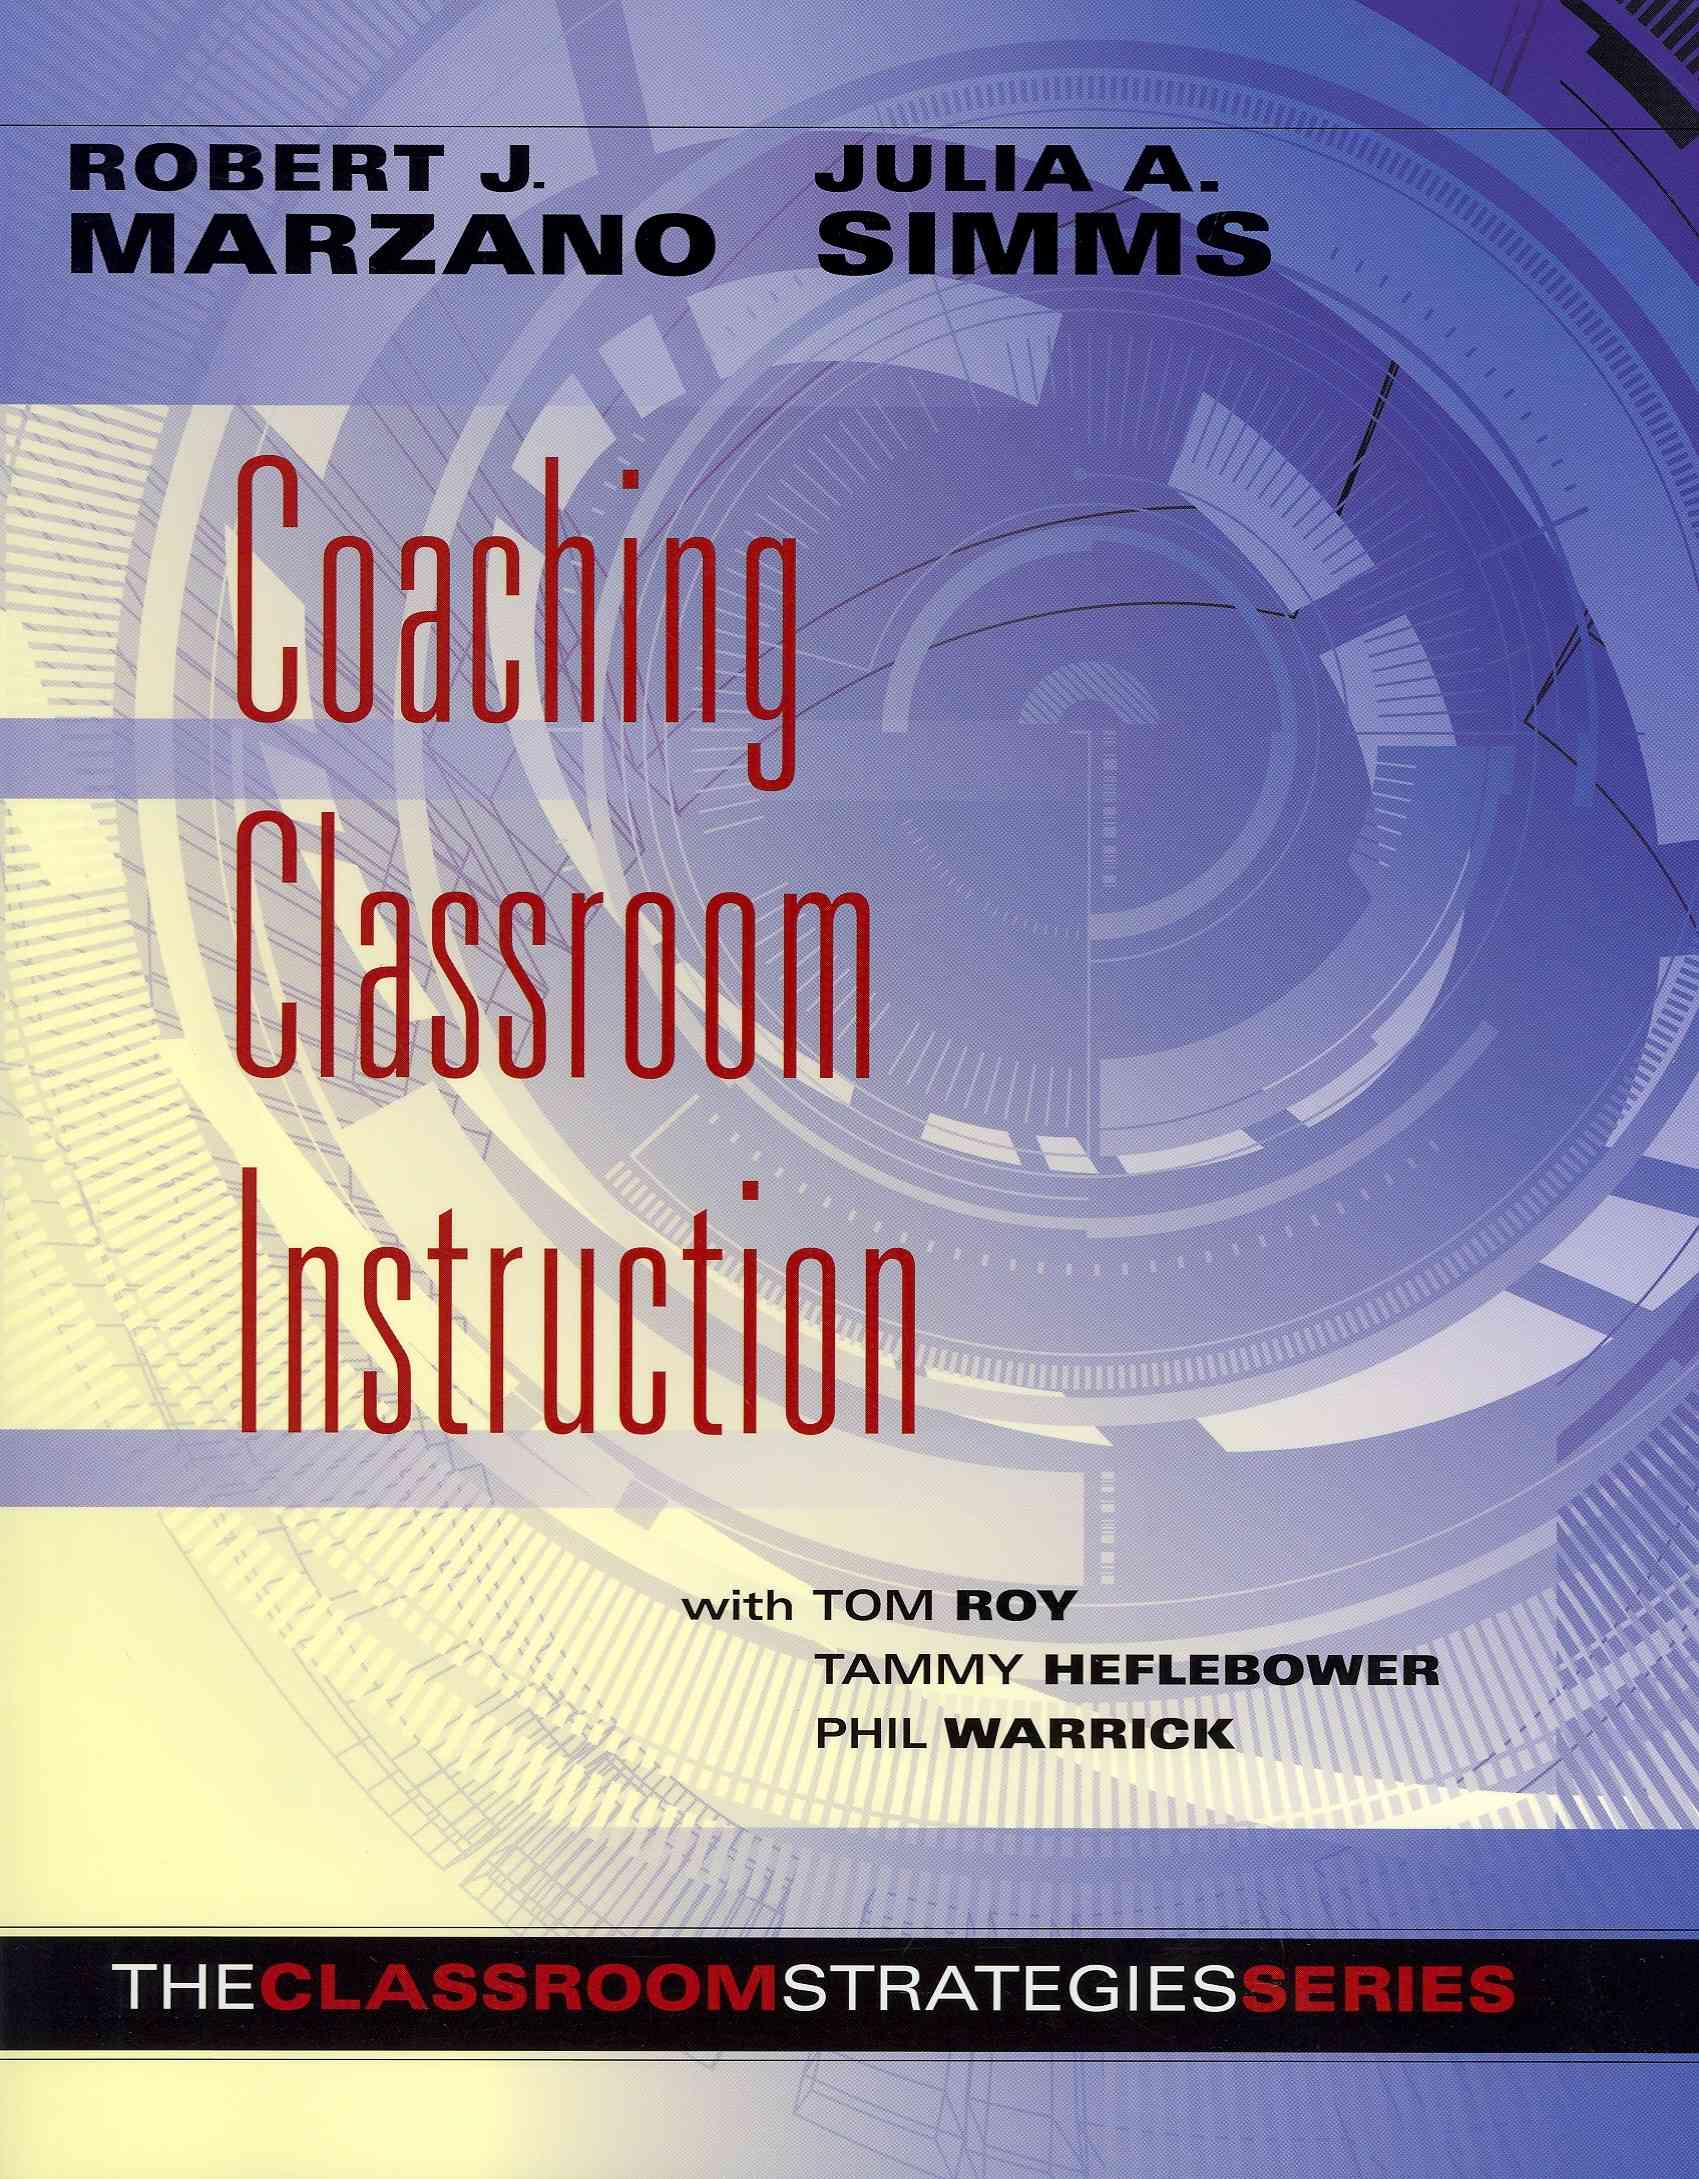 Coaching Classroom Instruction By Marzano, Robert J./ Simms, Julia A.